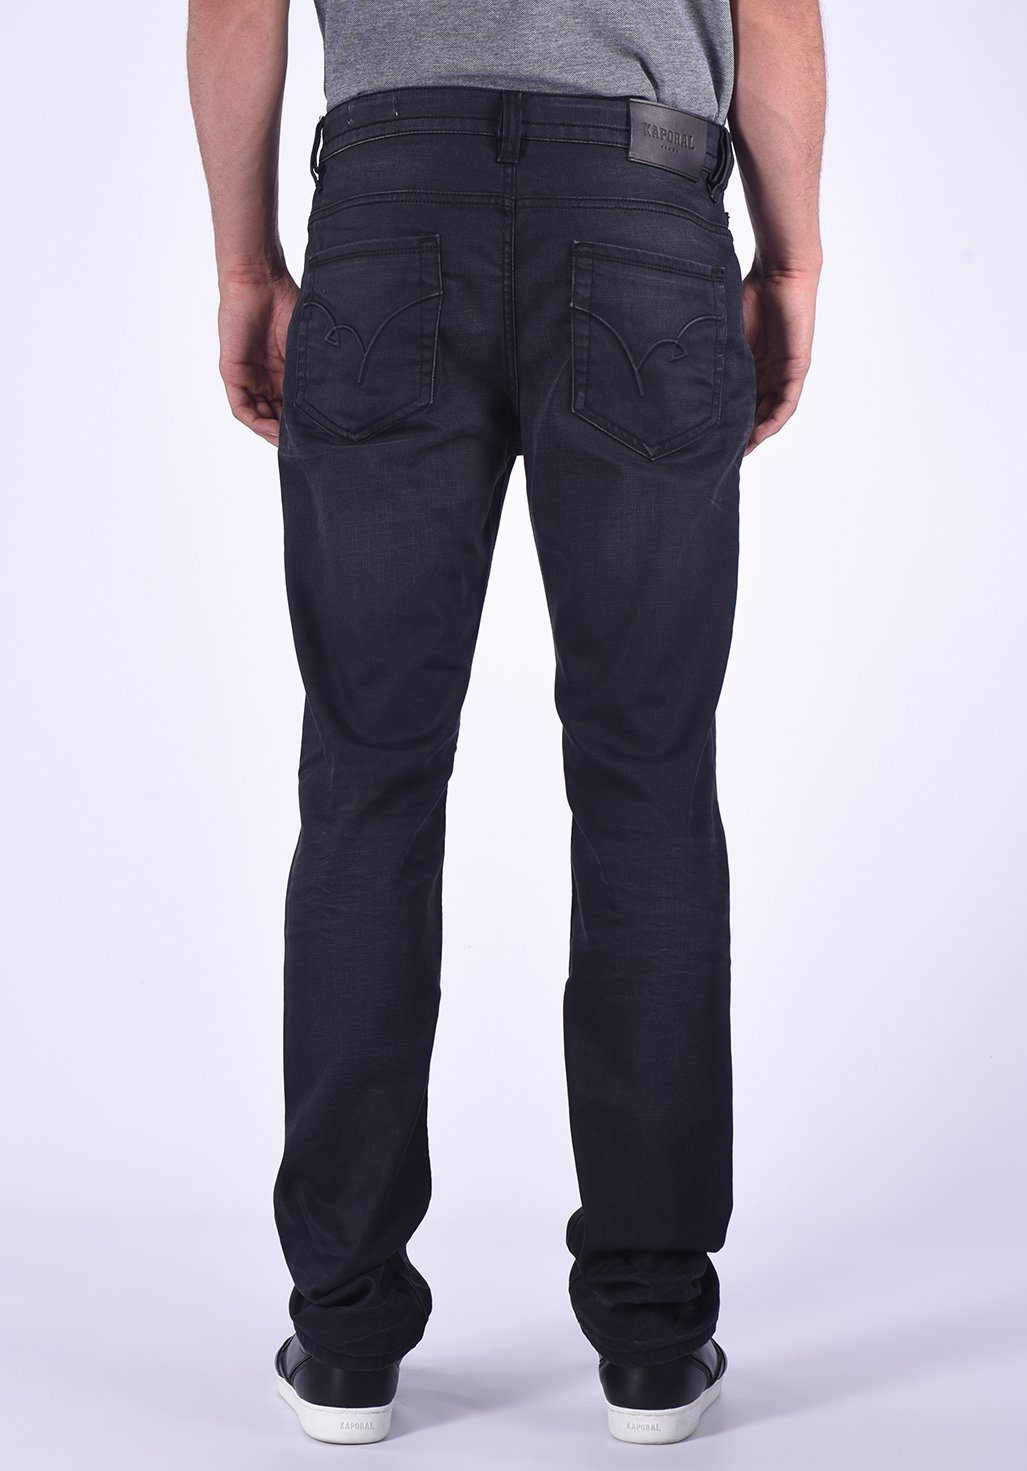 Kaporal Jeanshose in Straight Fit-Passform